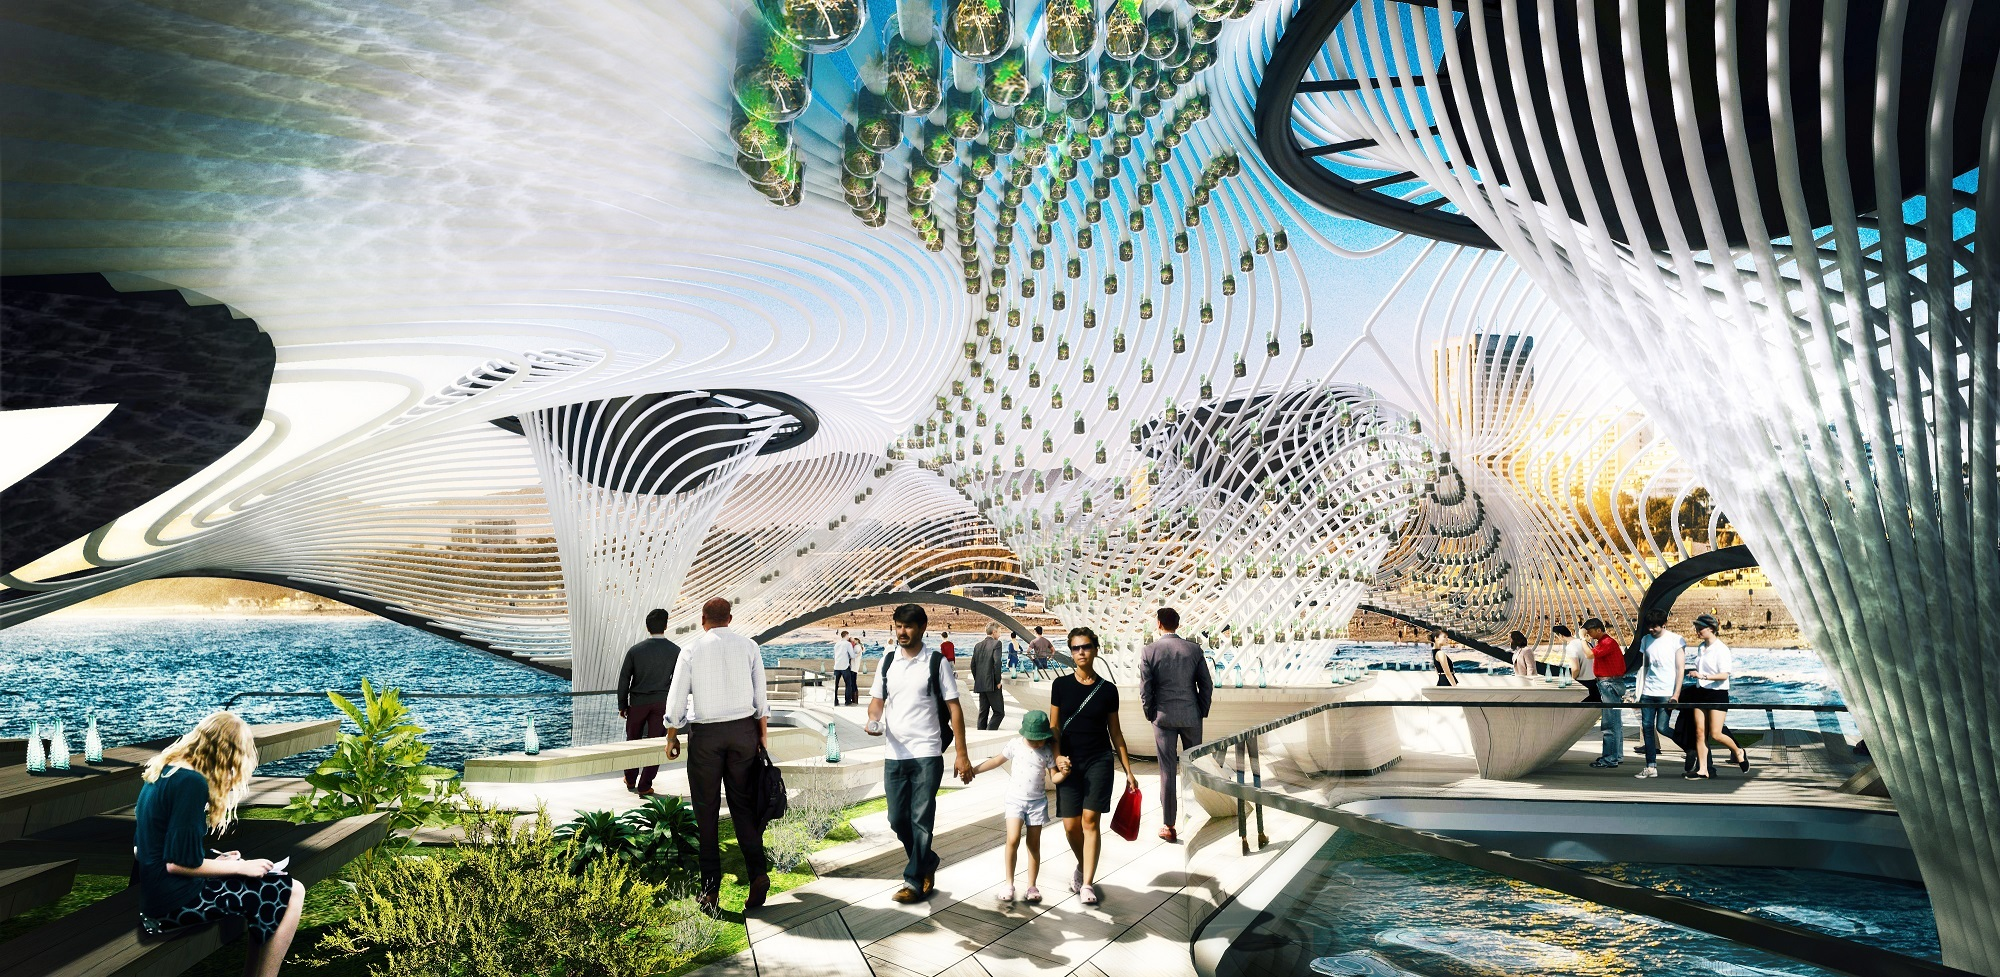 Gallery of This Floating Desalination Megastructure is Designed to